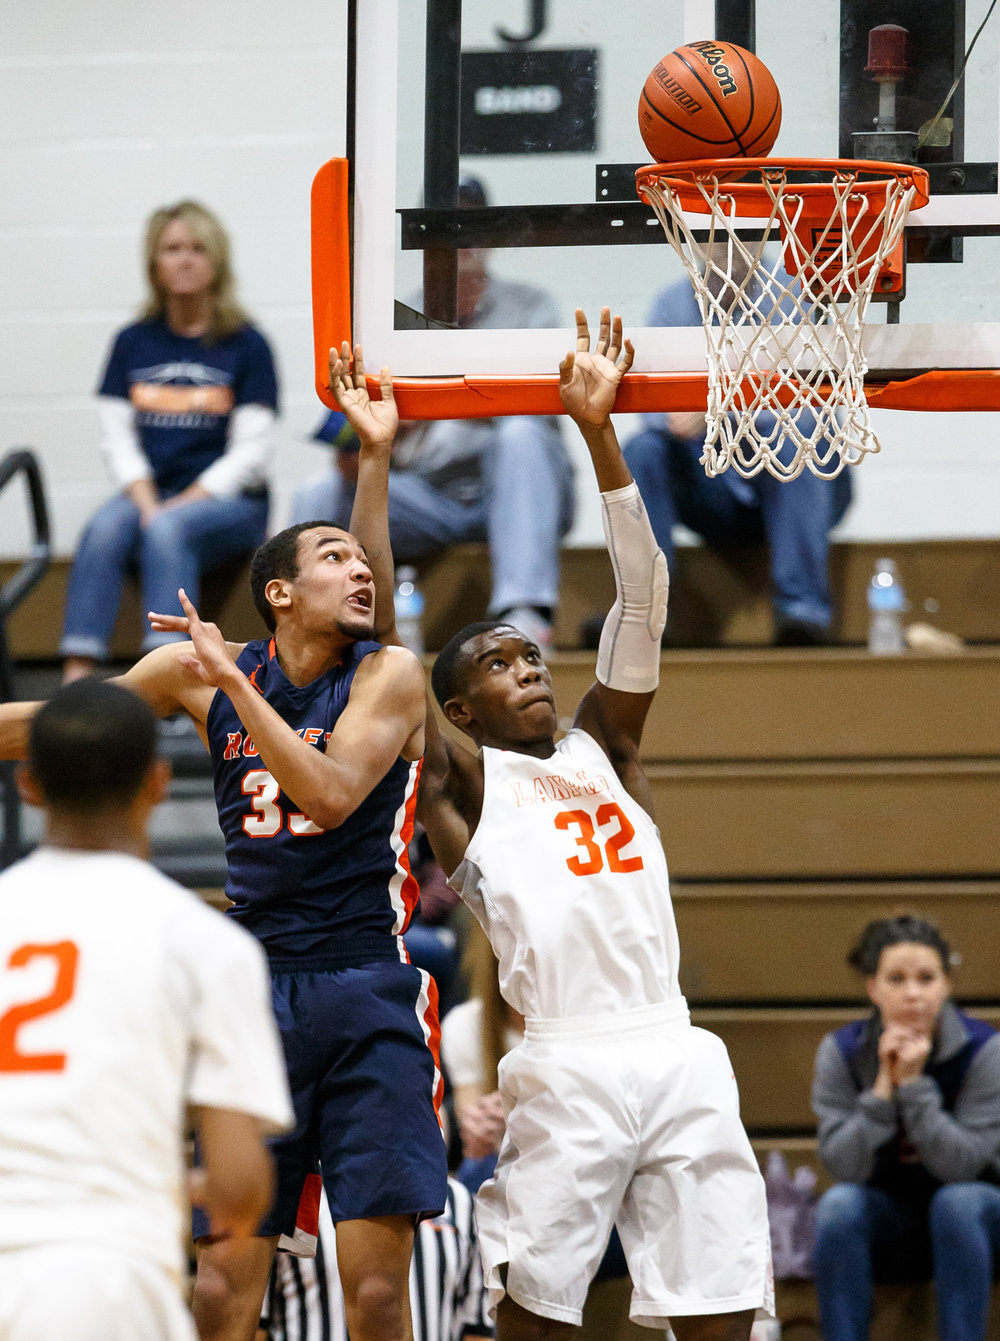 Lanphier's Karl Wright III (32) goes for the put-back against Rochester's Collin Stallworth (33) in the second quarter during the Class 3A Lanphier Regional at Lober-Nika Gymnasium, Tuesday, Feb. 28, 2017, in Springfield, Ill. [Justin L. Fowler/The State Journal-Register